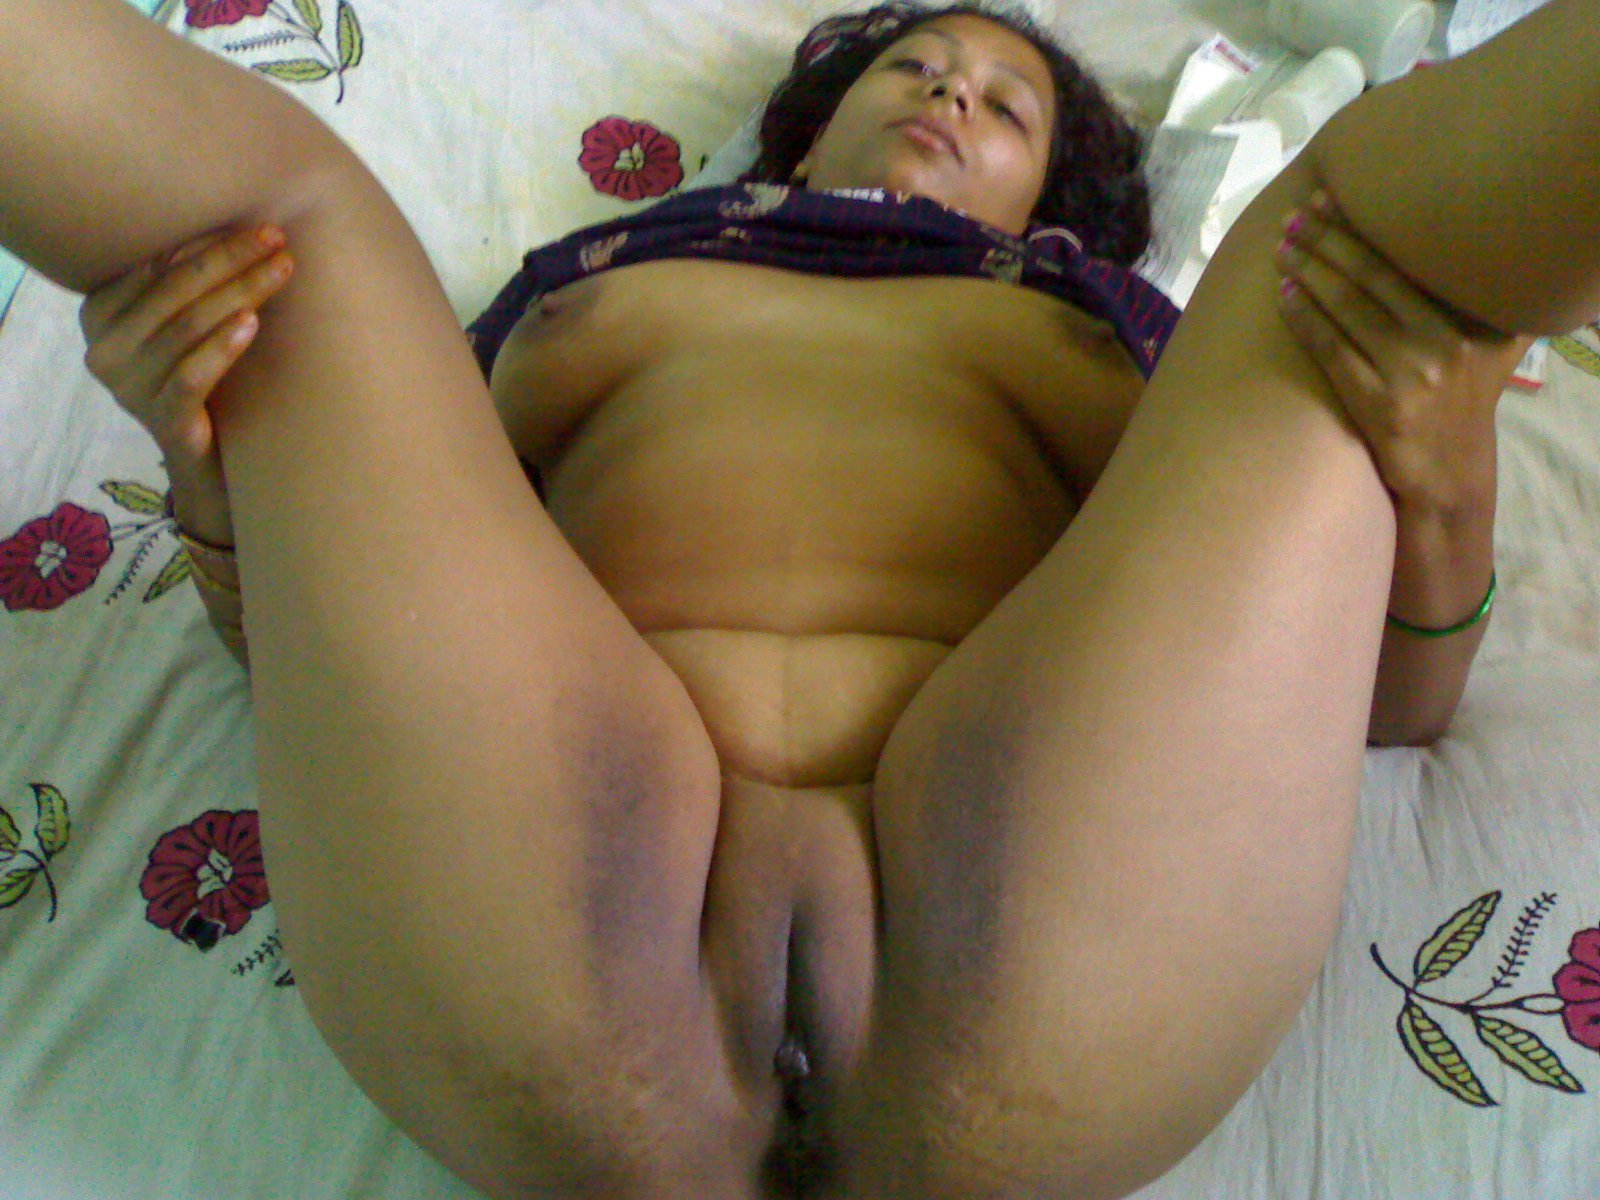 Village aunty hot full naked photo are